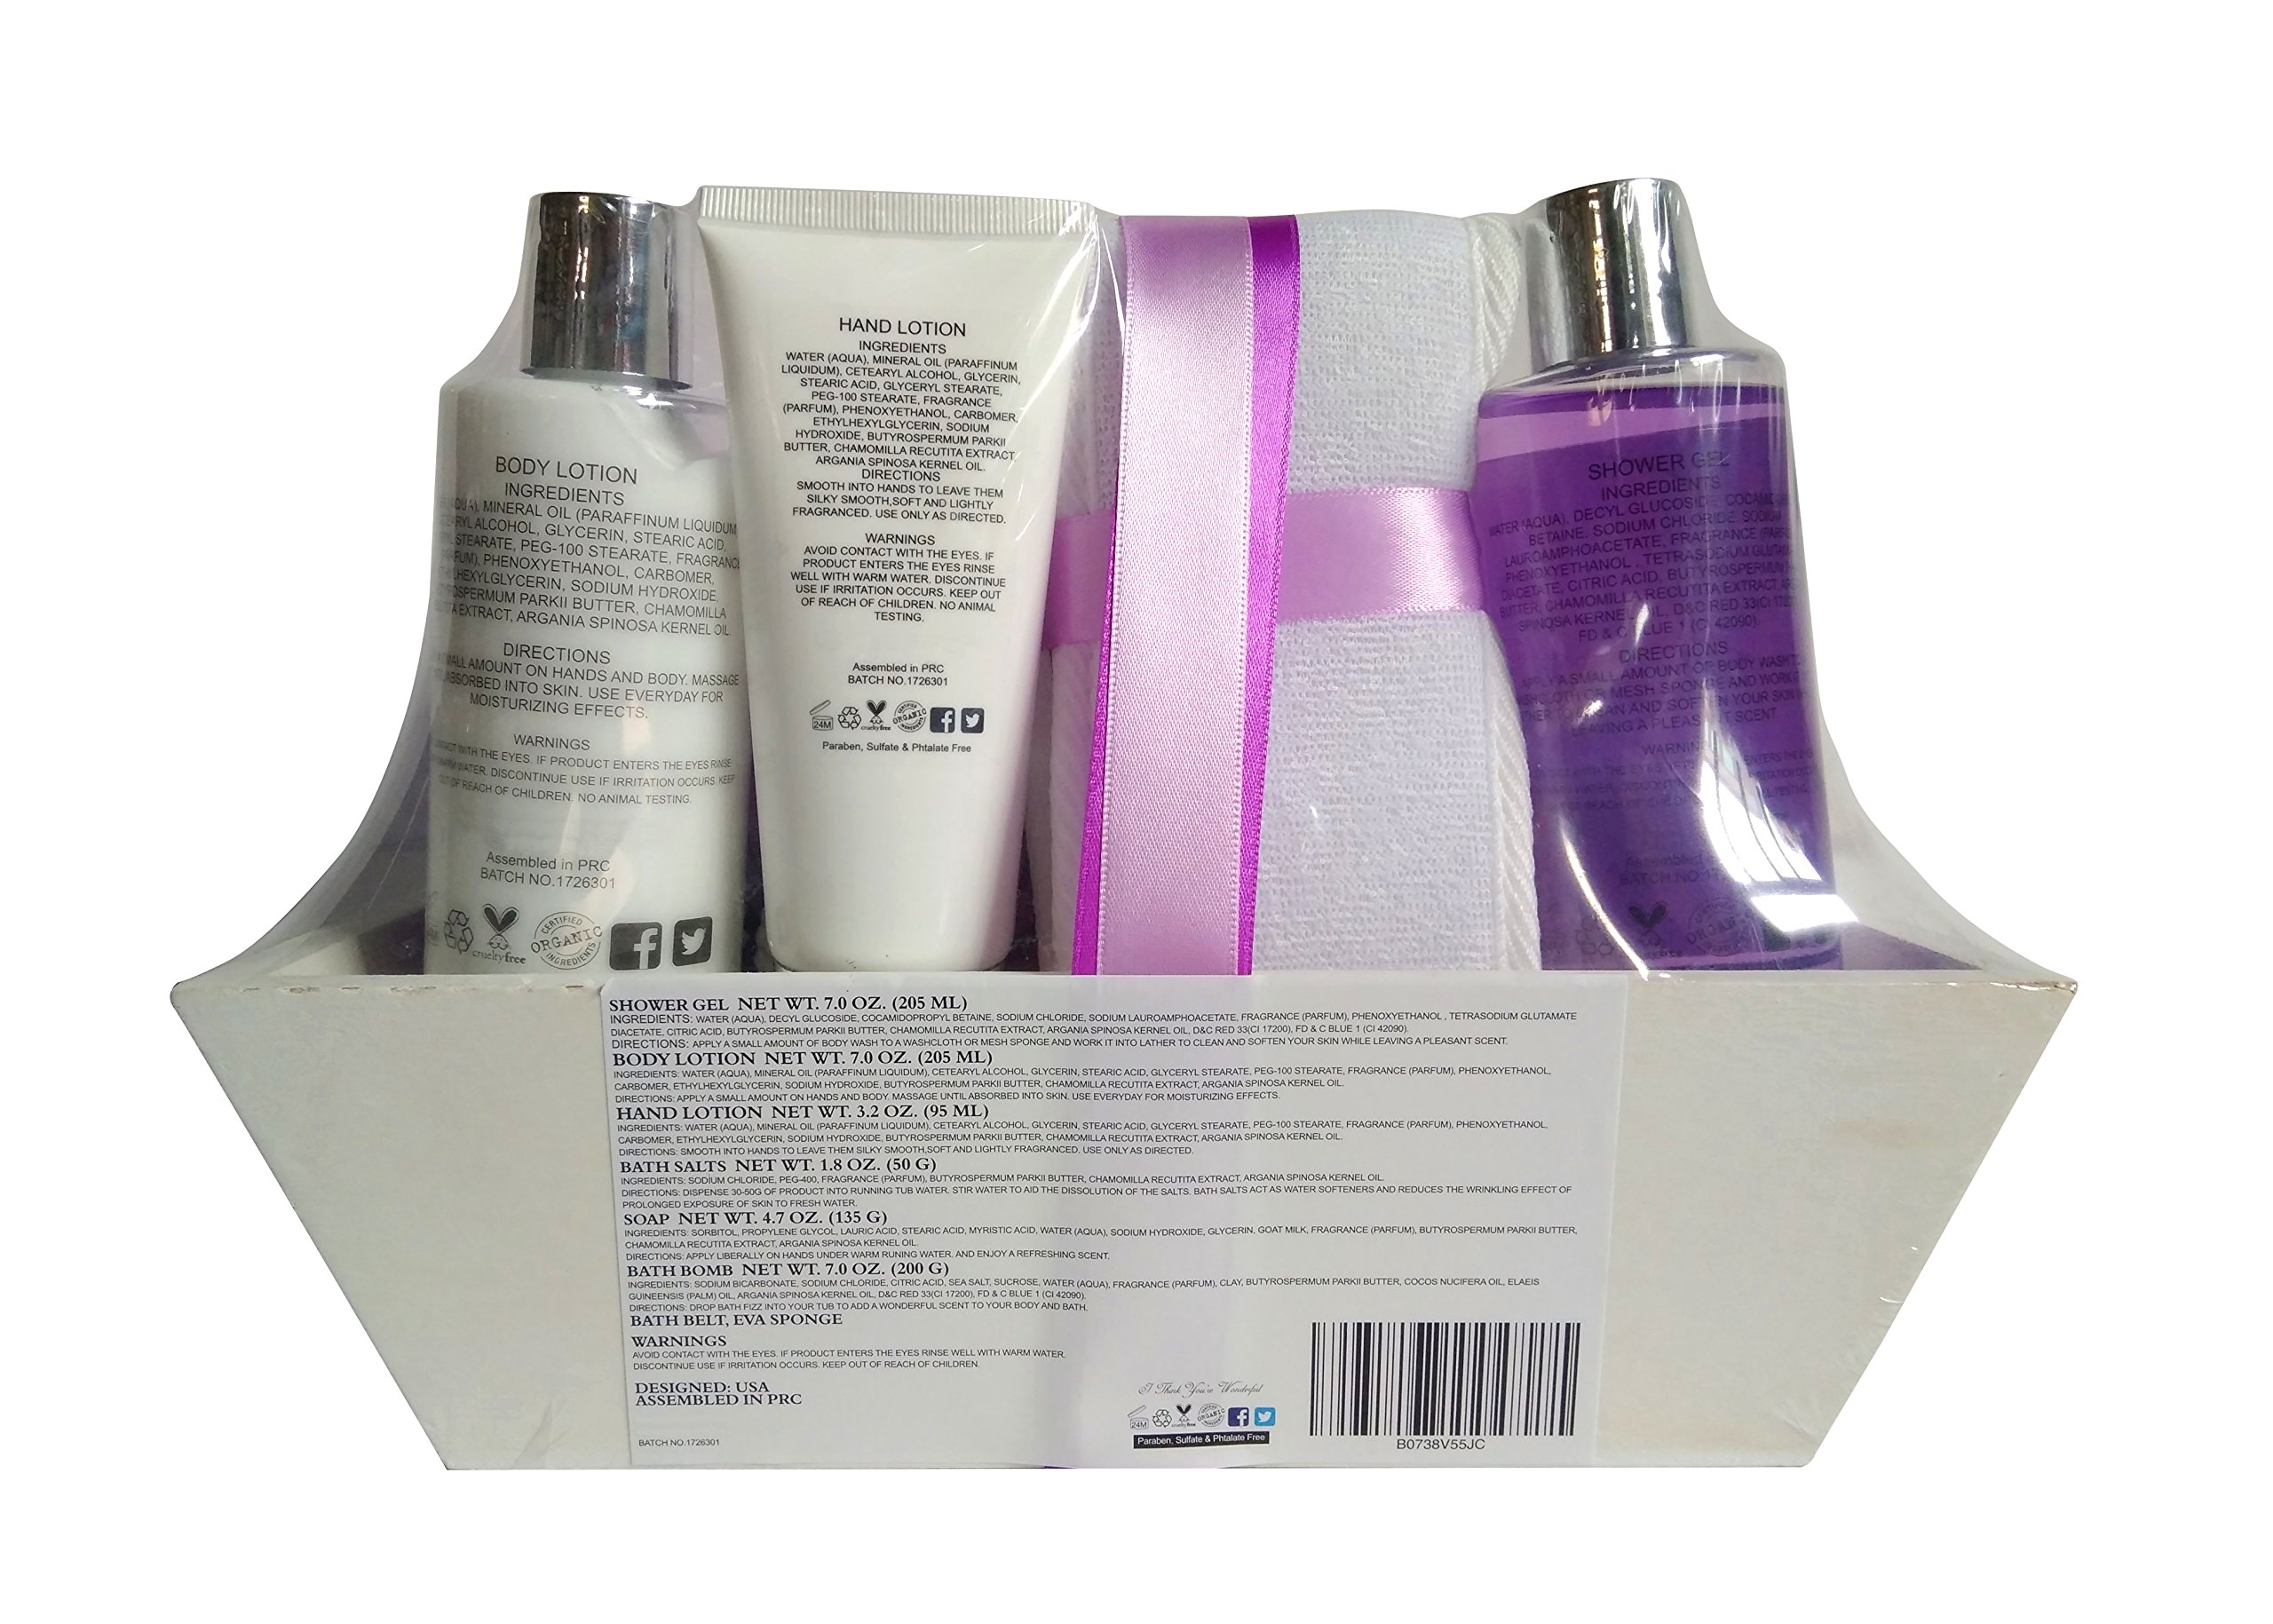 Deluxe Spa Basket, ''I Think You're Wonderful'' Gift Basket for Women. Bath & Body 10-Piece Gift Set. by Nurture Me Organics (Image #5)